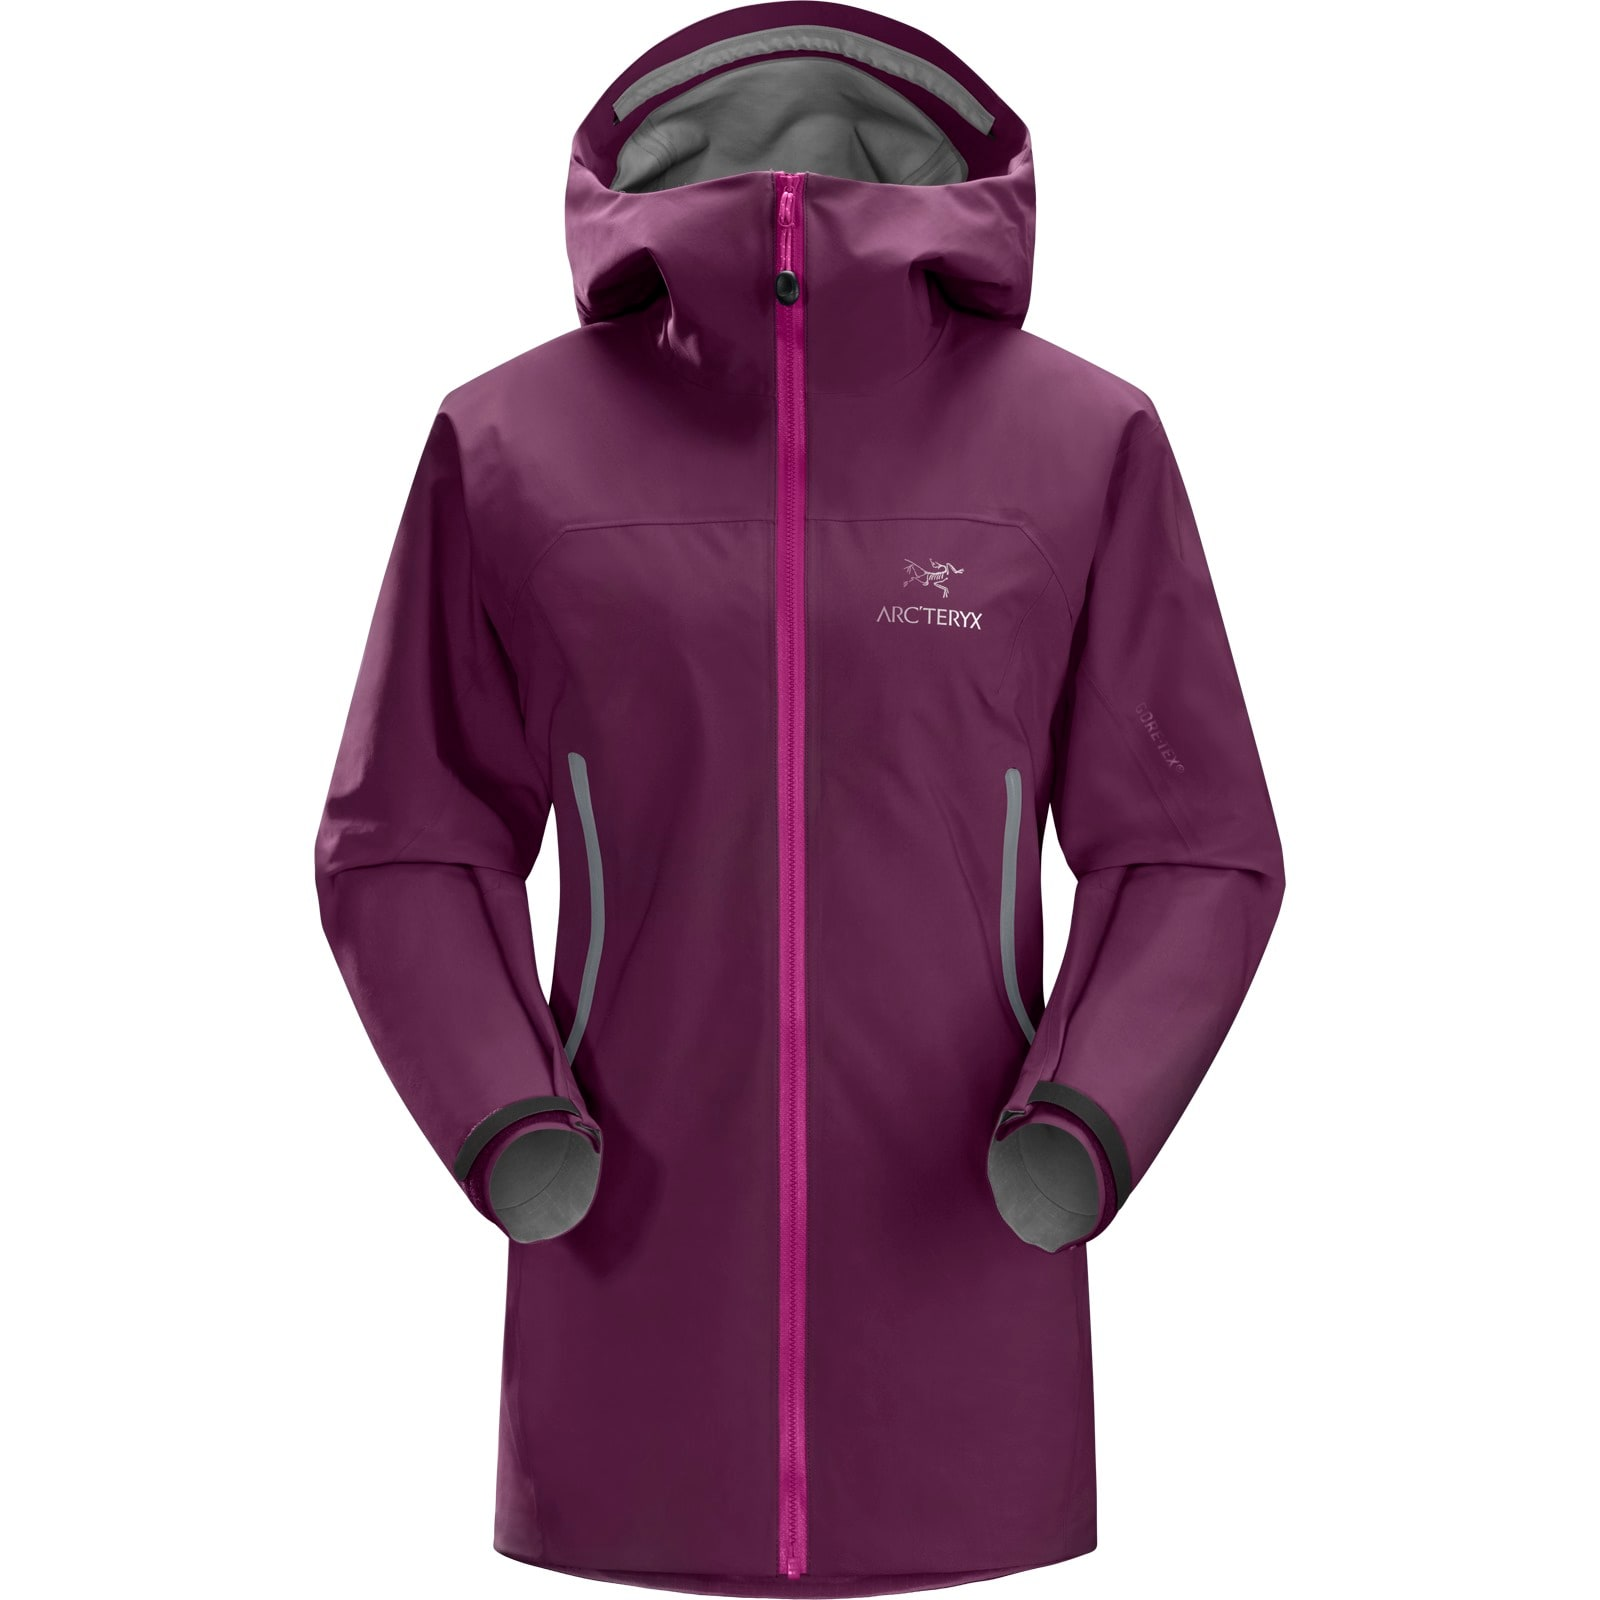 Zeta AR Jacket Women